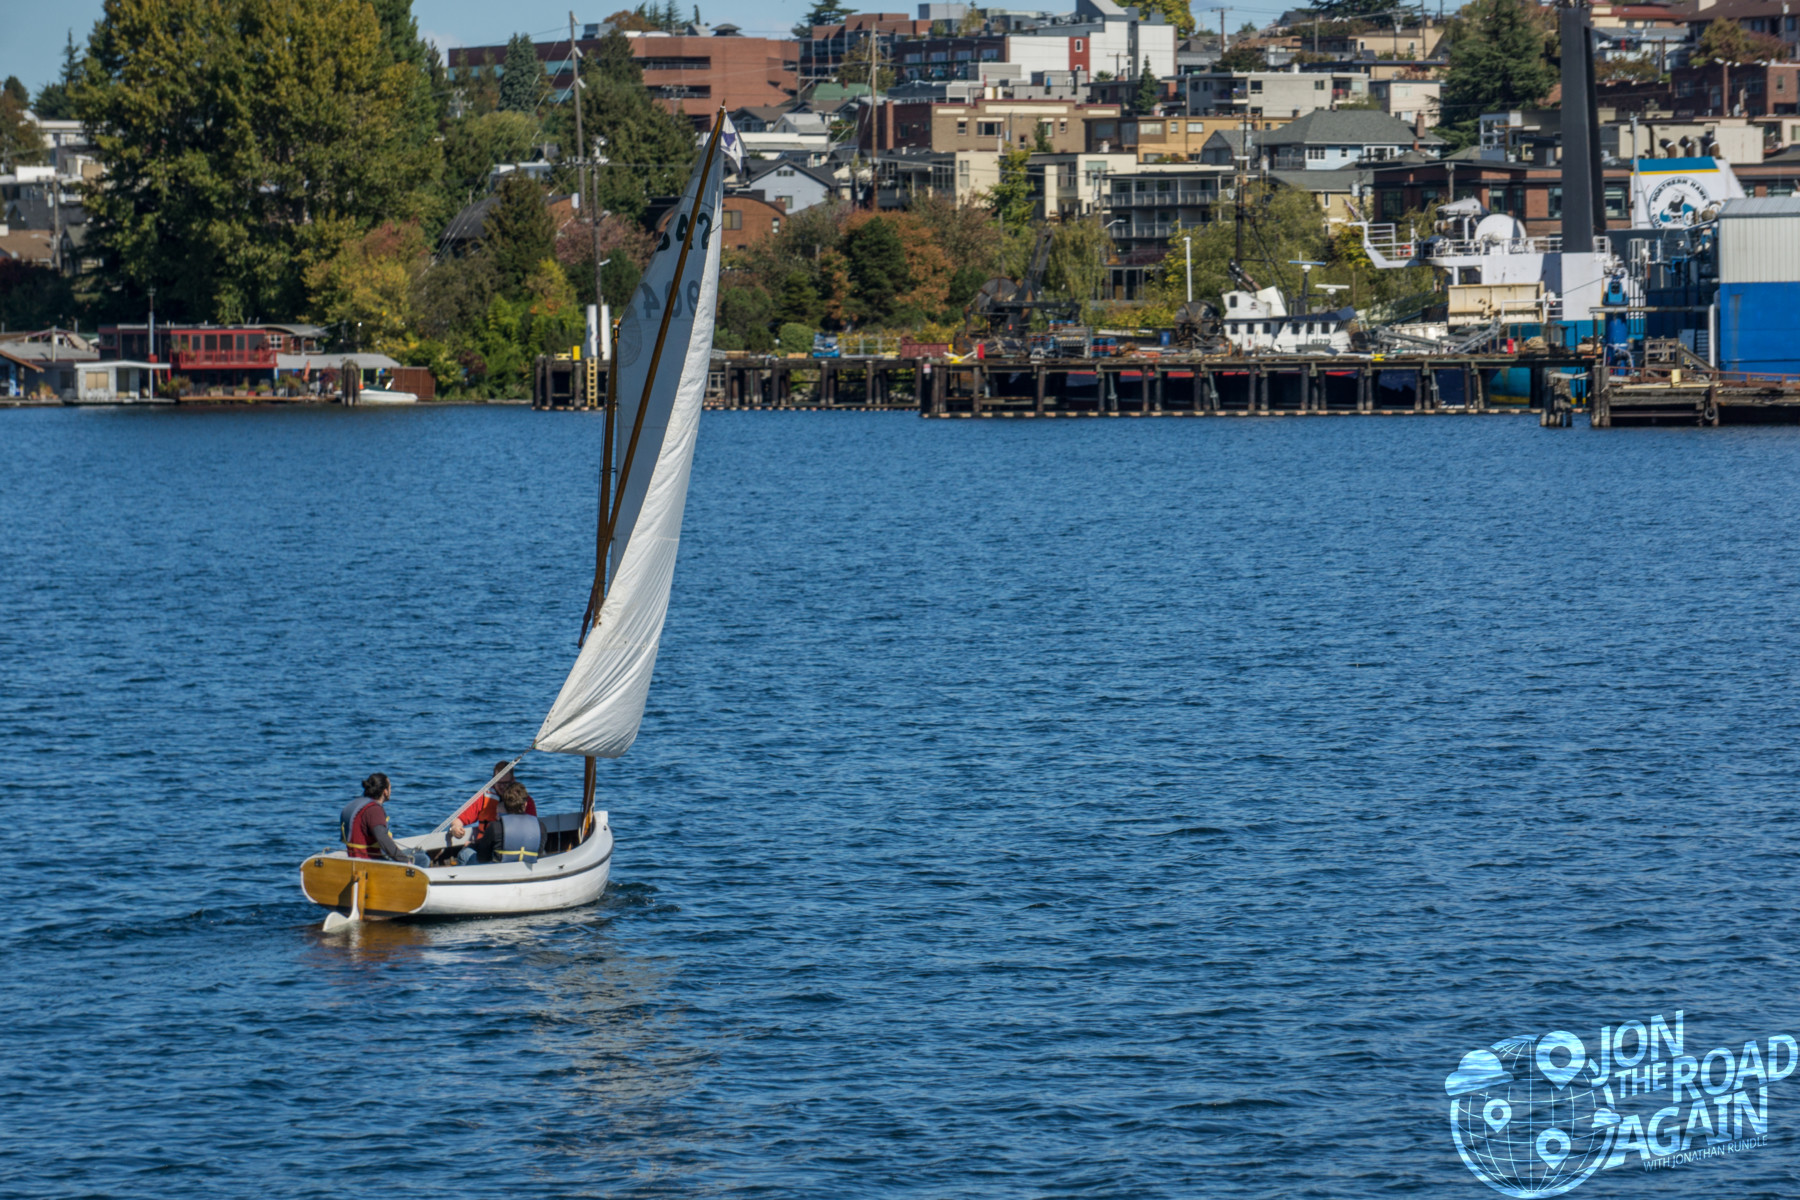 Center for Wooden Boats sail boat on Lake Union